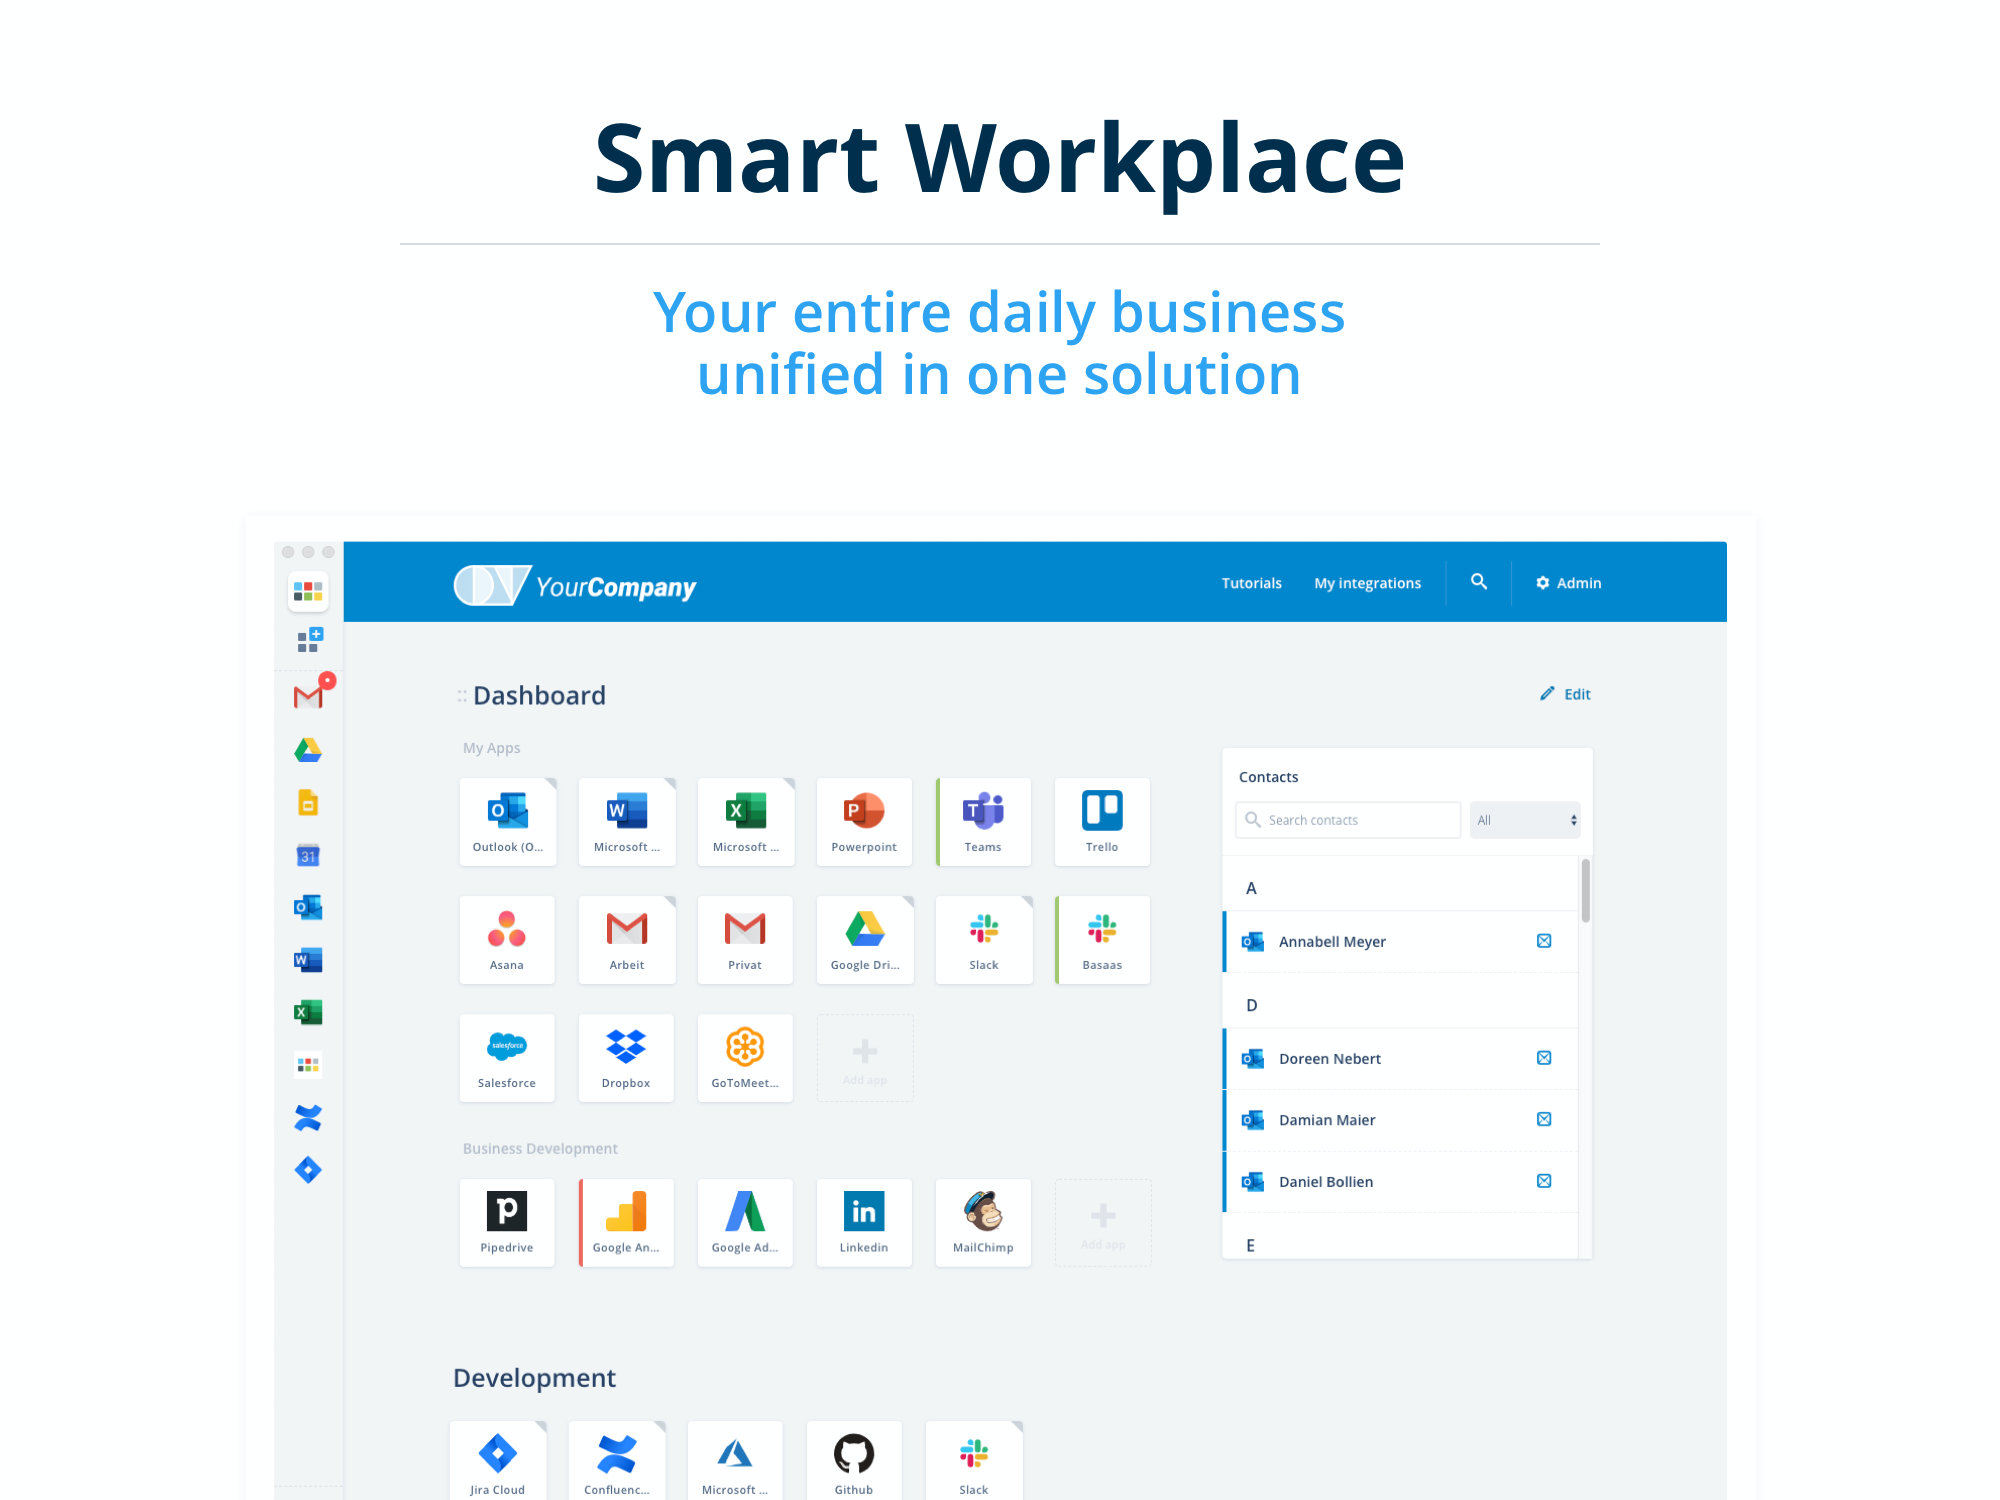 Basaas screenshot: Your entire daily business unified in one solution